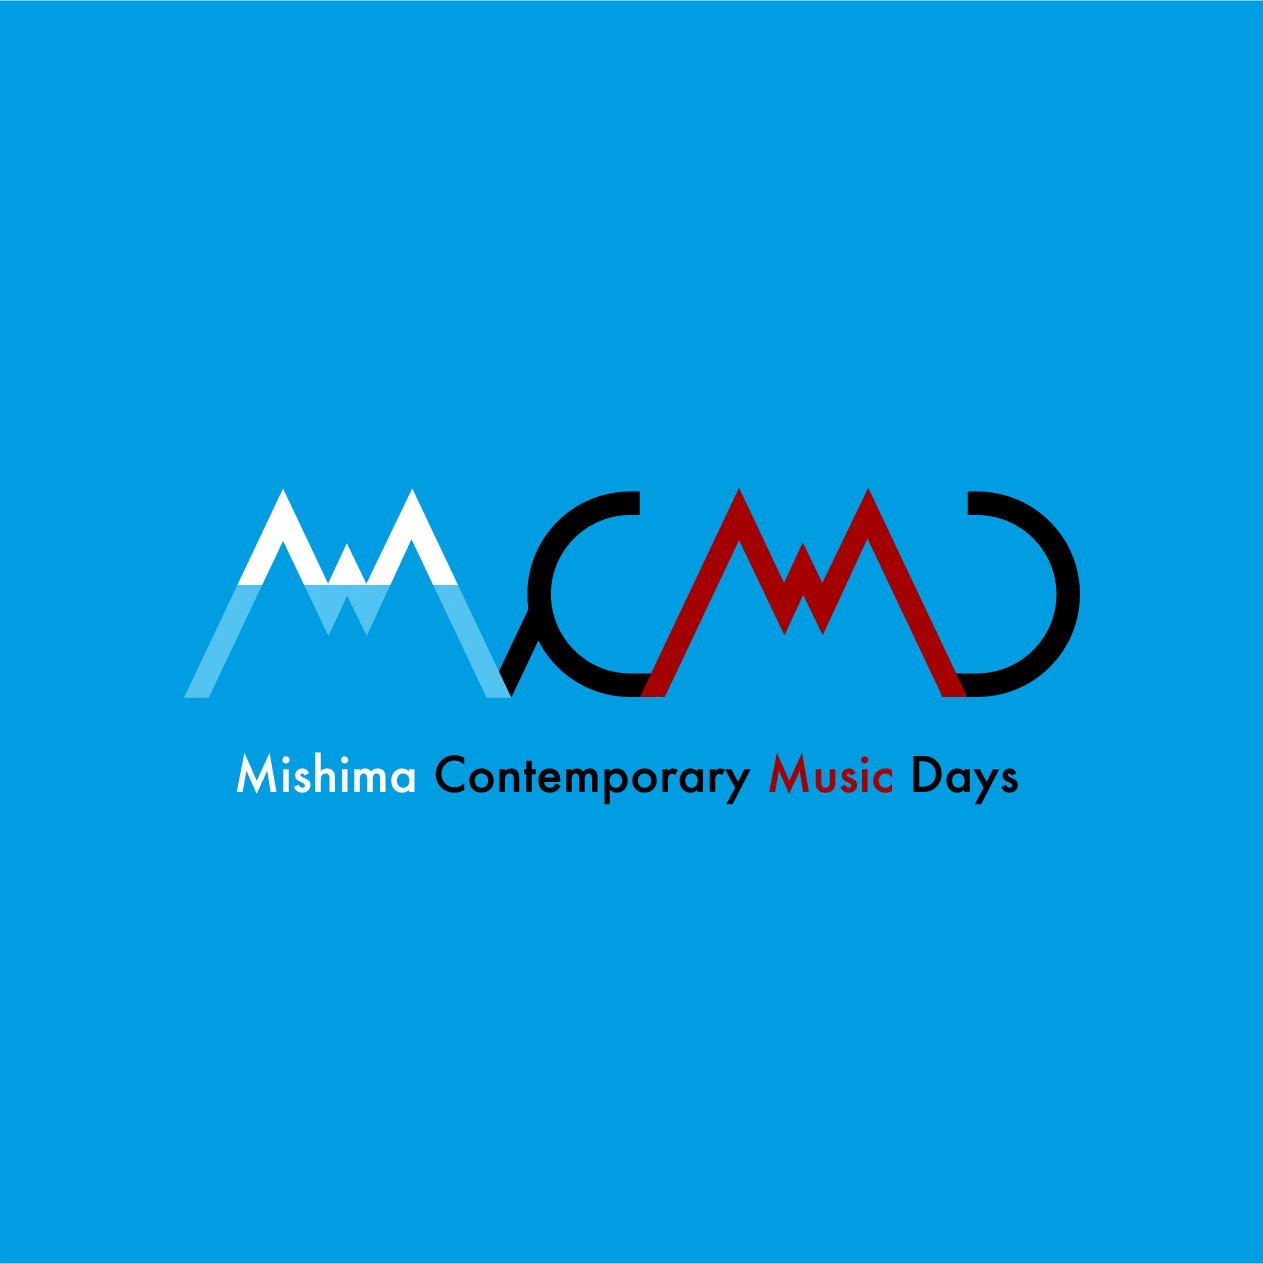 Mishima Contemporary Music Days